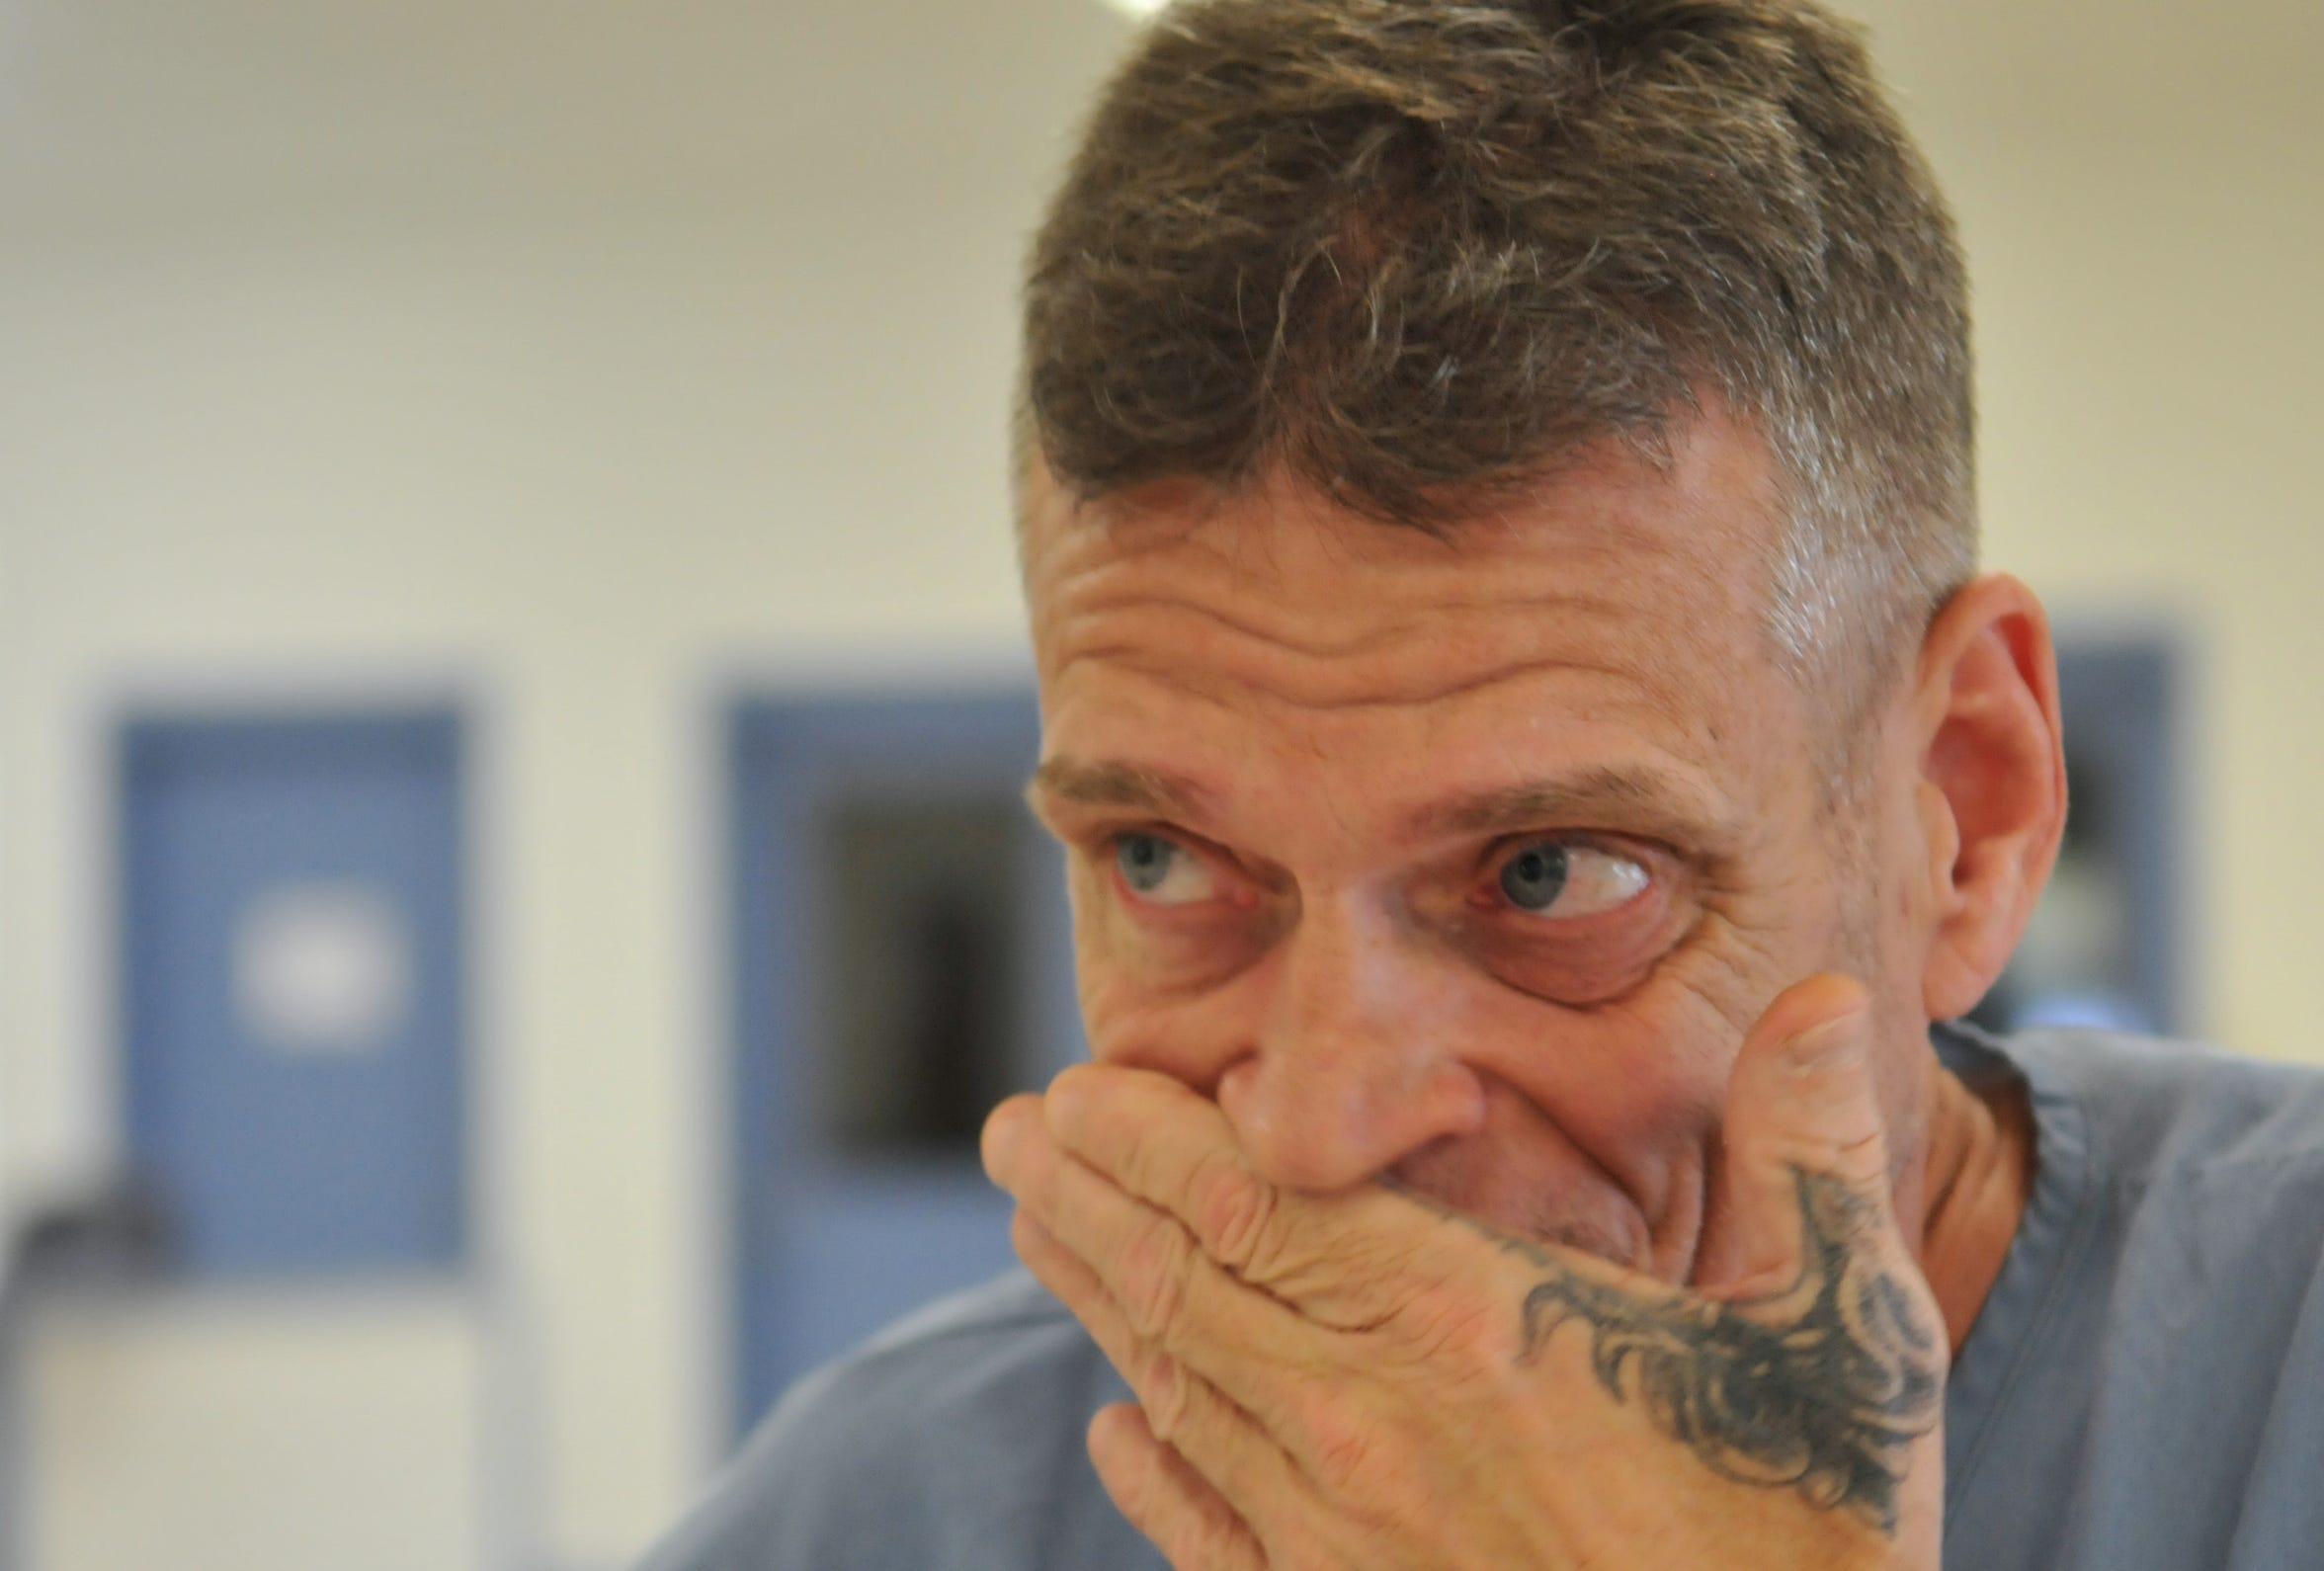 Jeffrey Abramowski during an interview with FLORIDA TODAY reporter John Tosses, at Martin County Correctional, where he is serving time for a second degree murder he insists he did not commit, and believes that he has the paper trail and other evidence to prove his innocence.